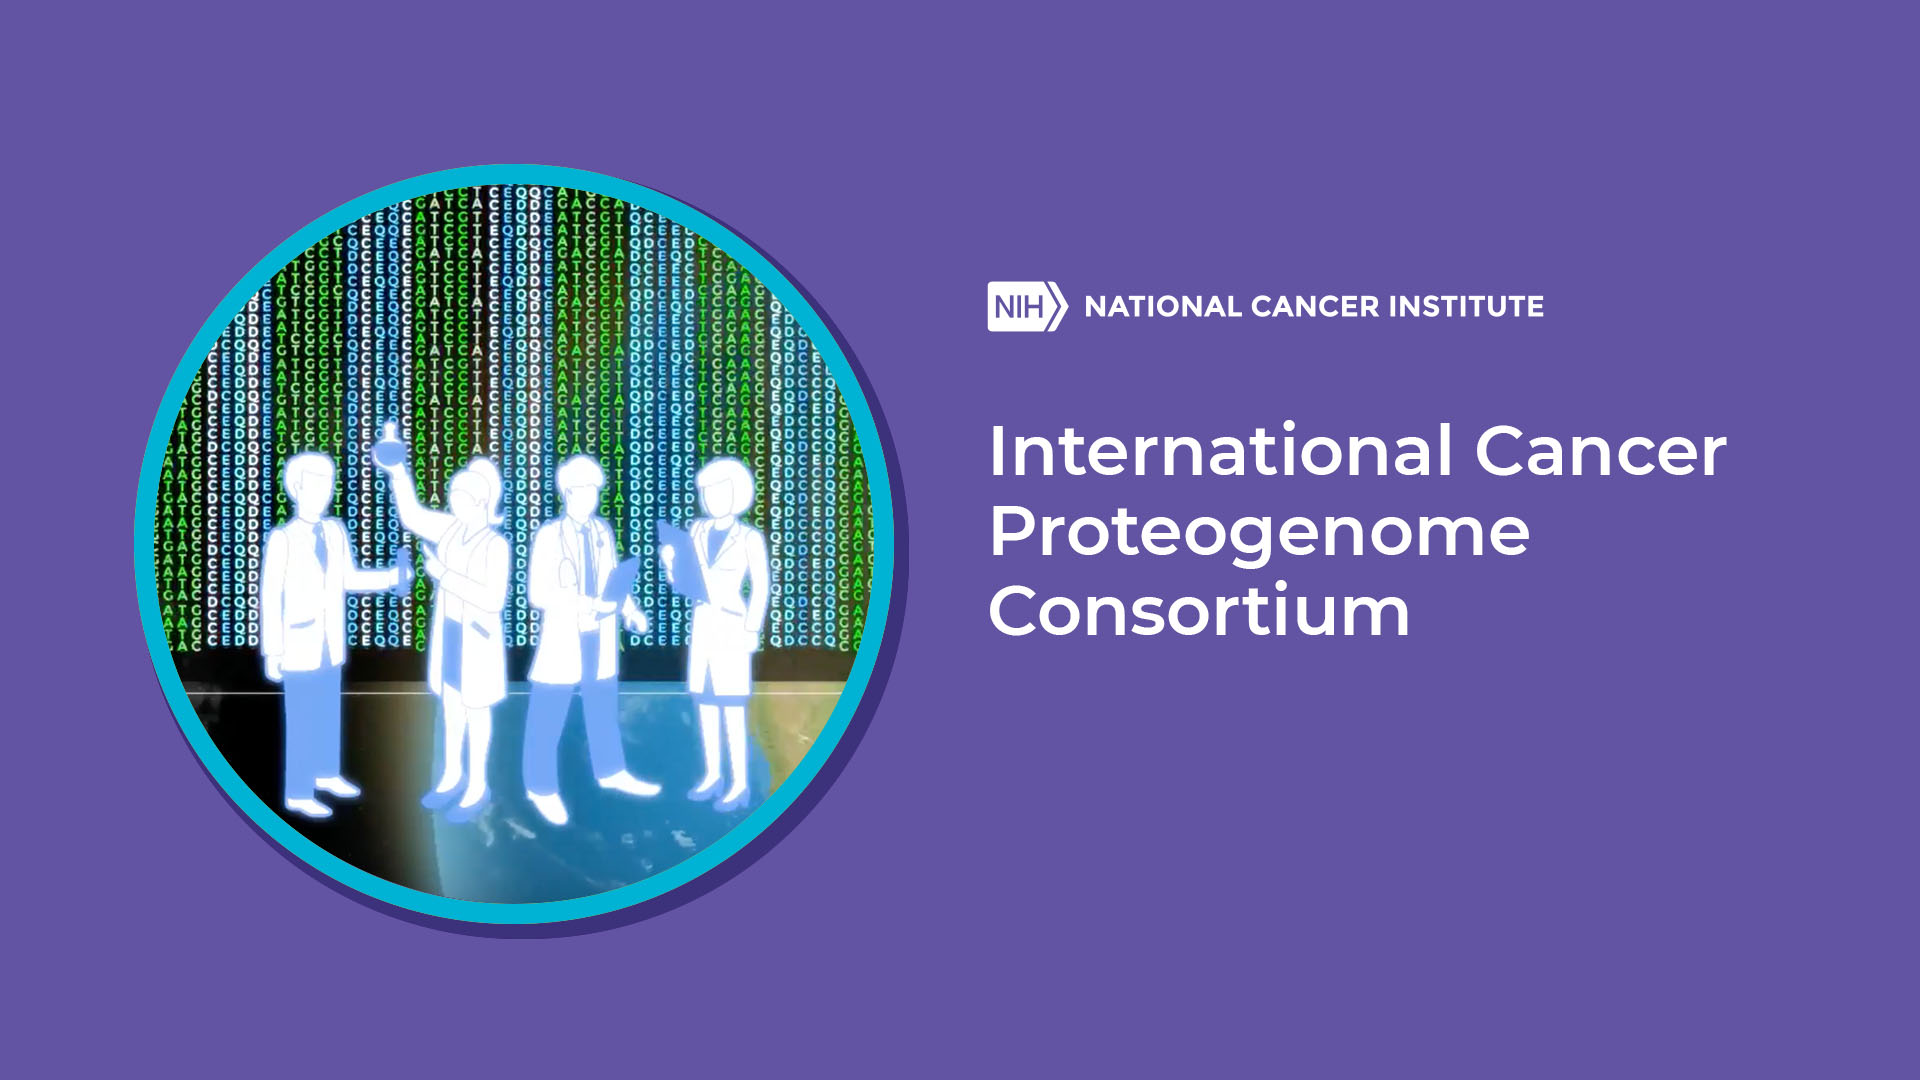 International Cancer Proteogenome Consortium